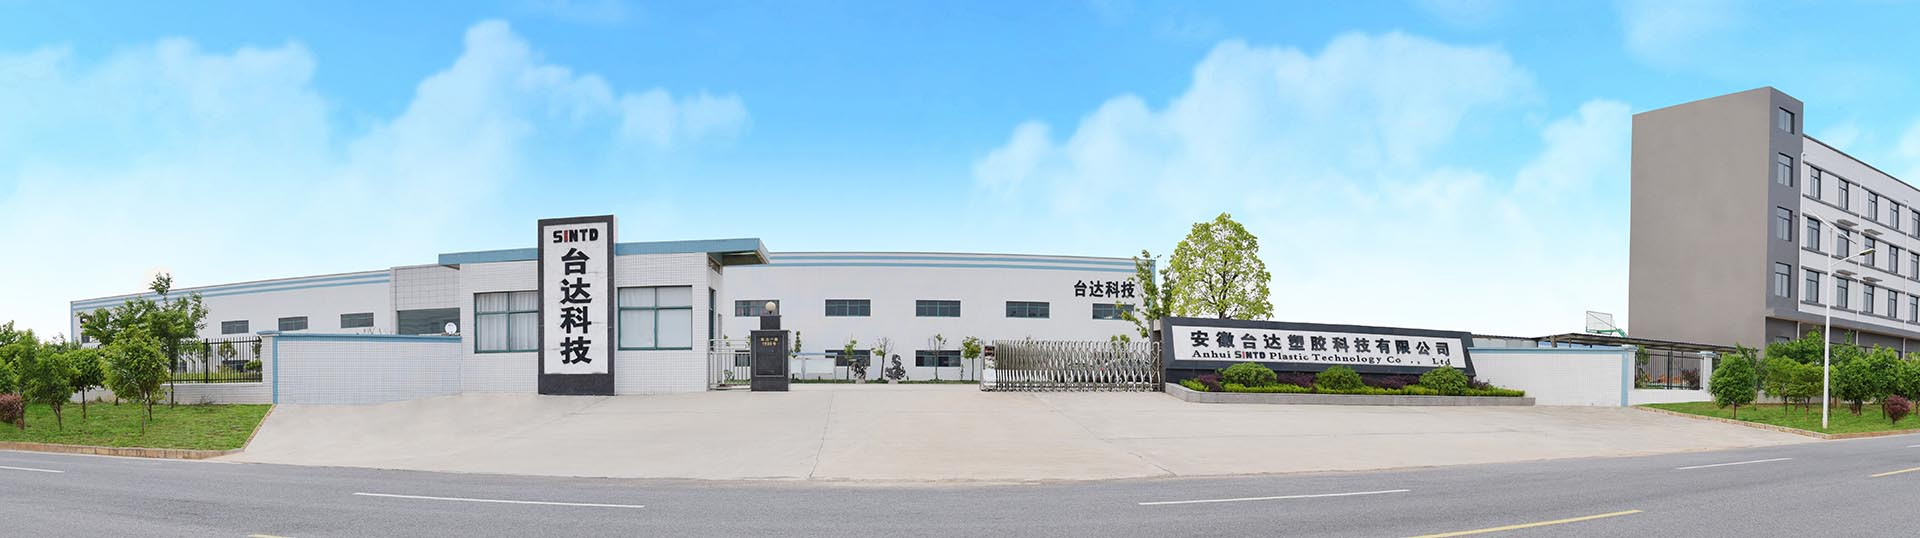 Baotou Liande Oil and Mechanical Co., Ltd